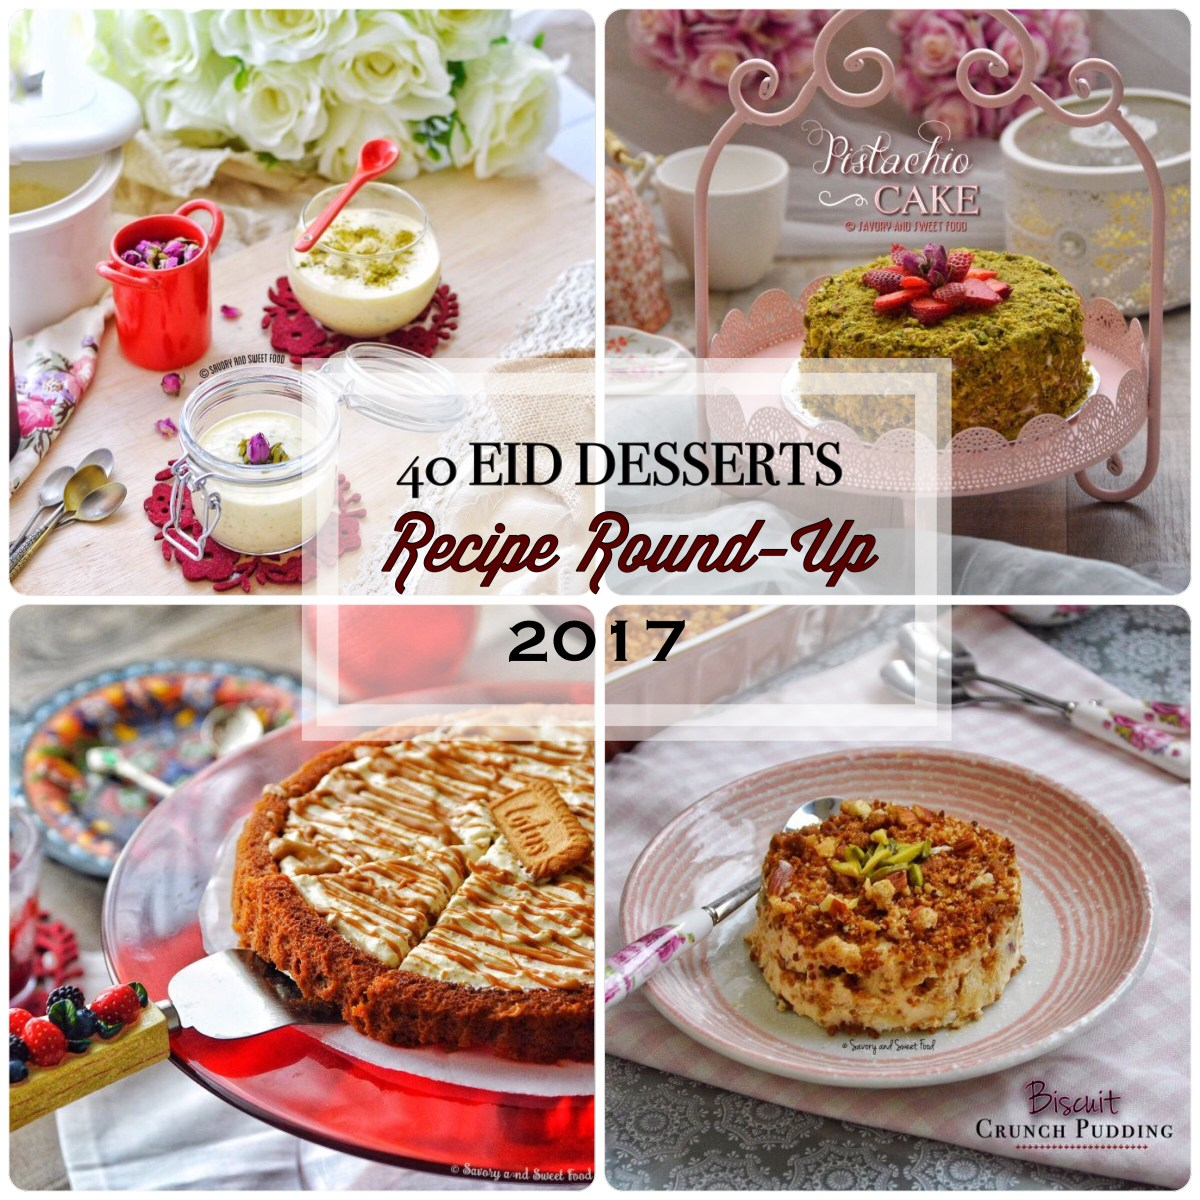 40 Eid Desserts Recipe Round-Up 2017